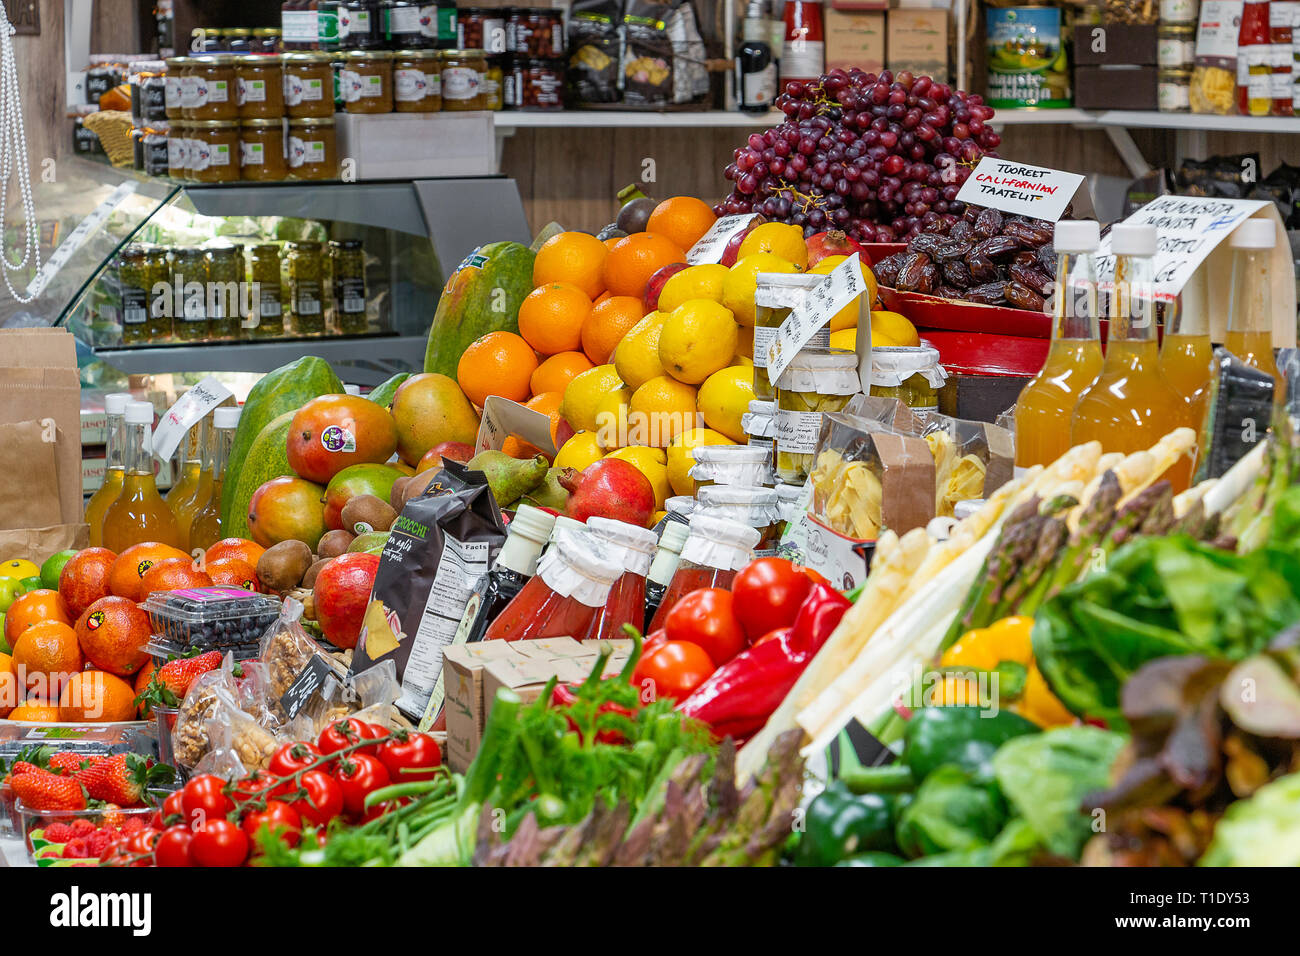 Helsinki, Finland - March 19, 2019: Various vegetables and food jars in the Market Hall - Stock Image